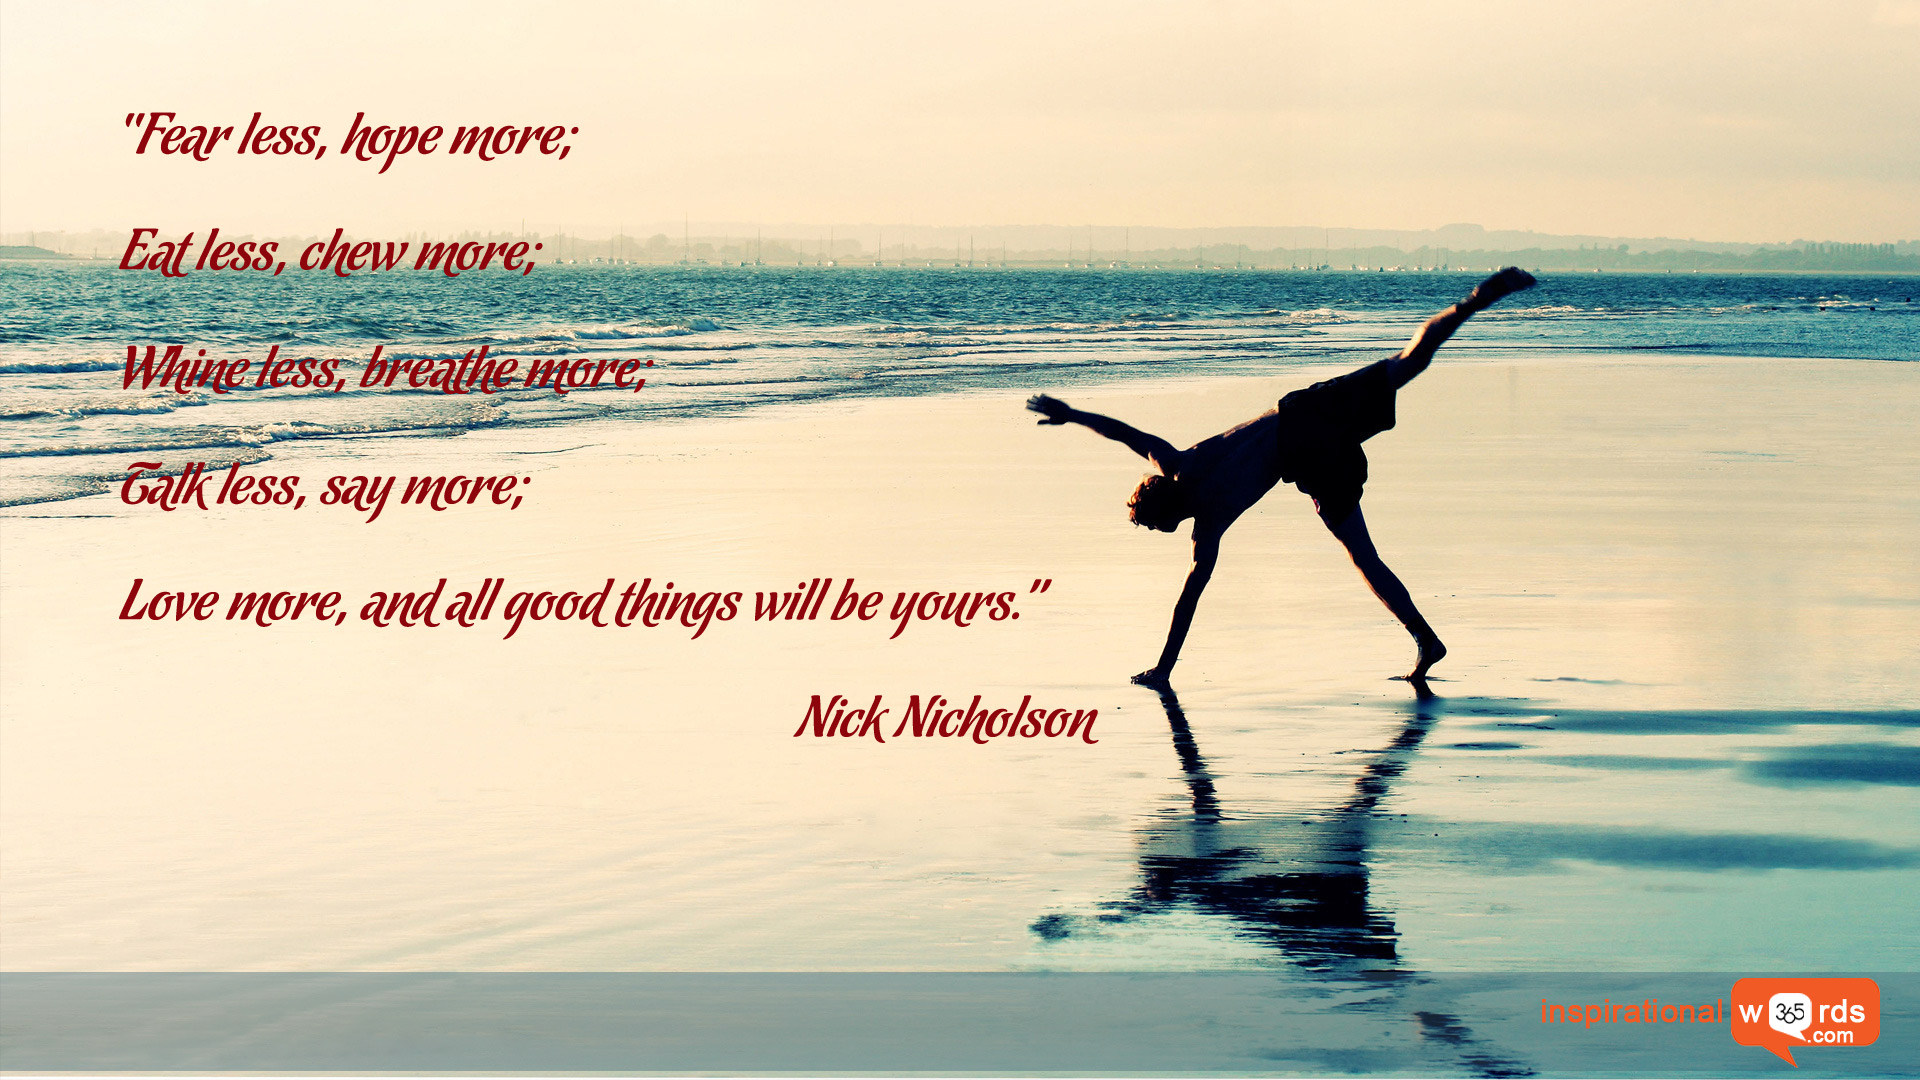 Inspirational Wallpaper Quote by Nick Nicholson